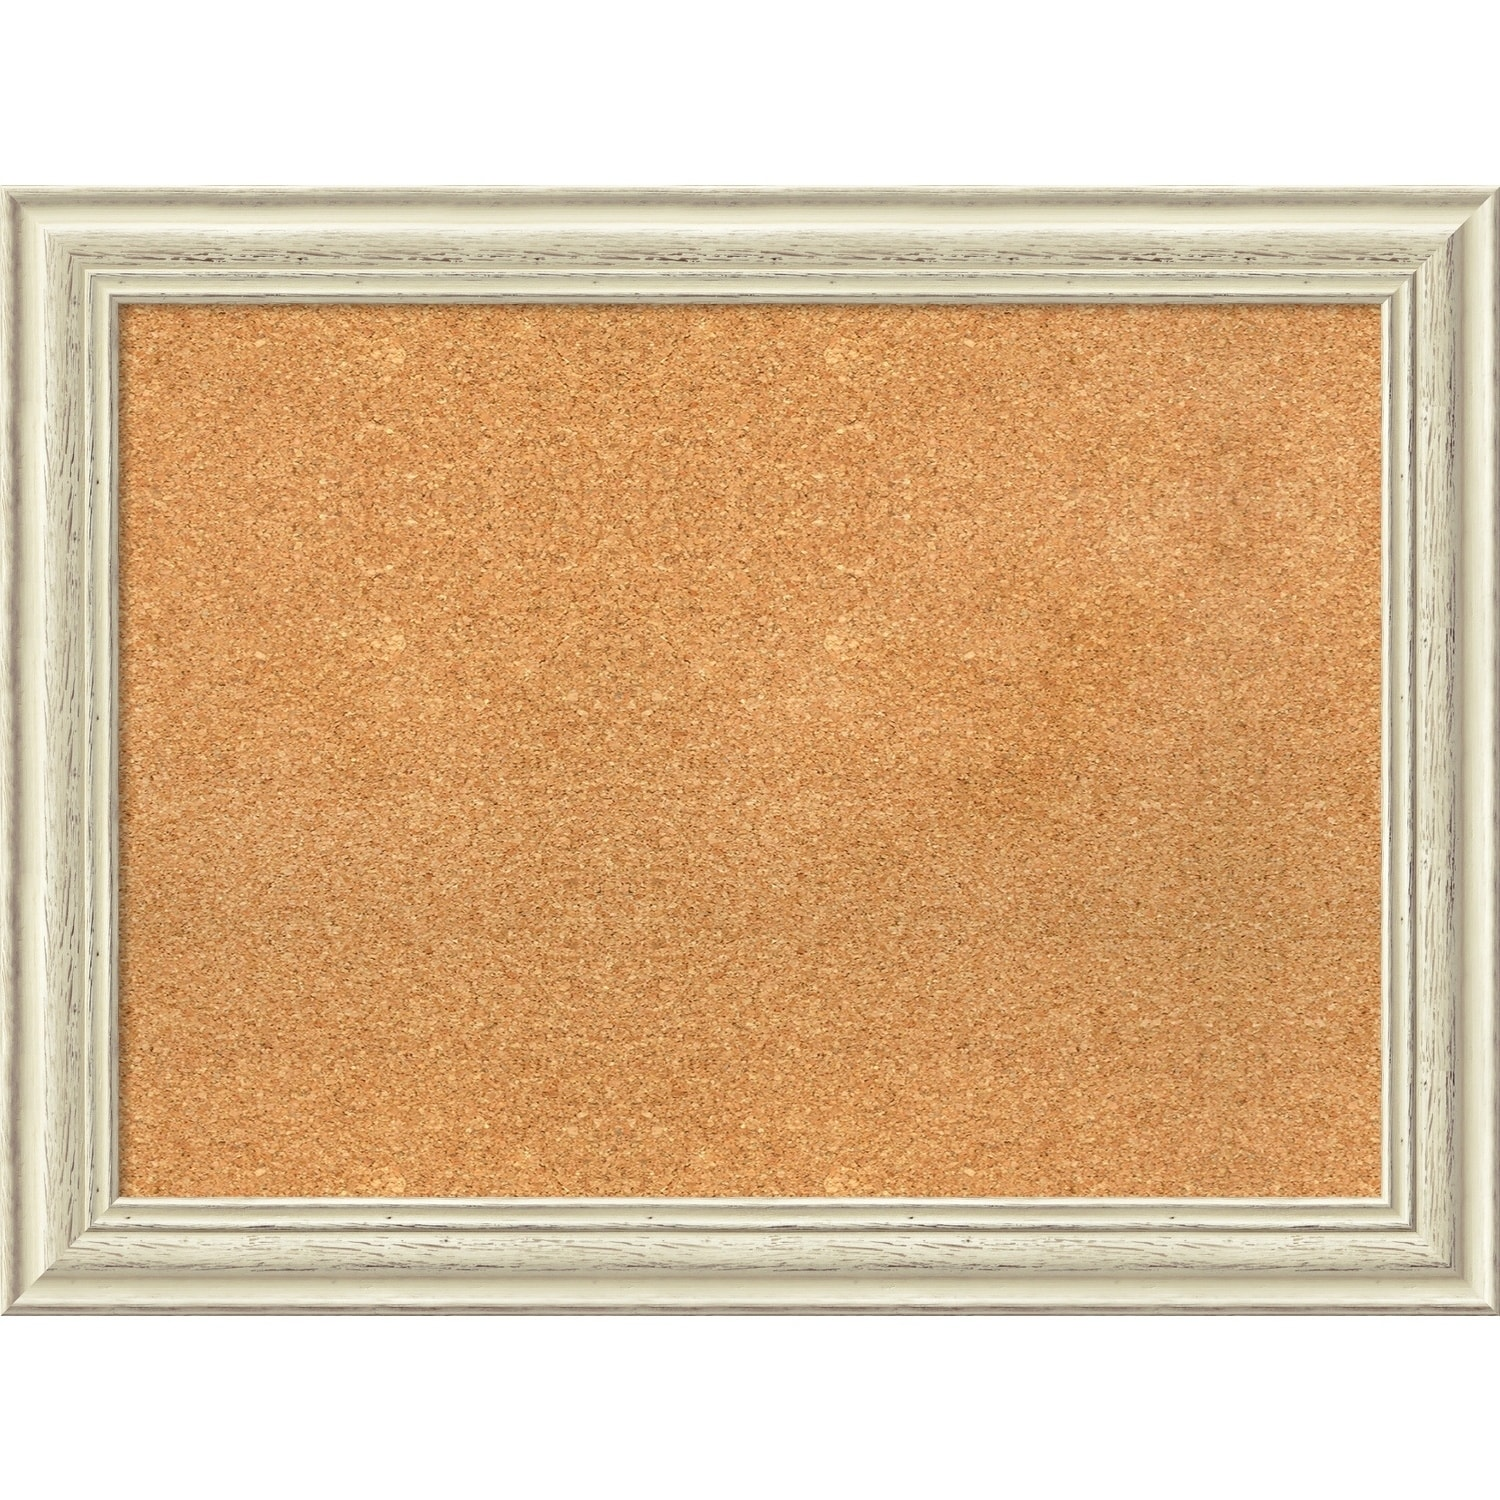 Shop Framed Cork Board, Country White Wash - On Sale - Free Shipping ...